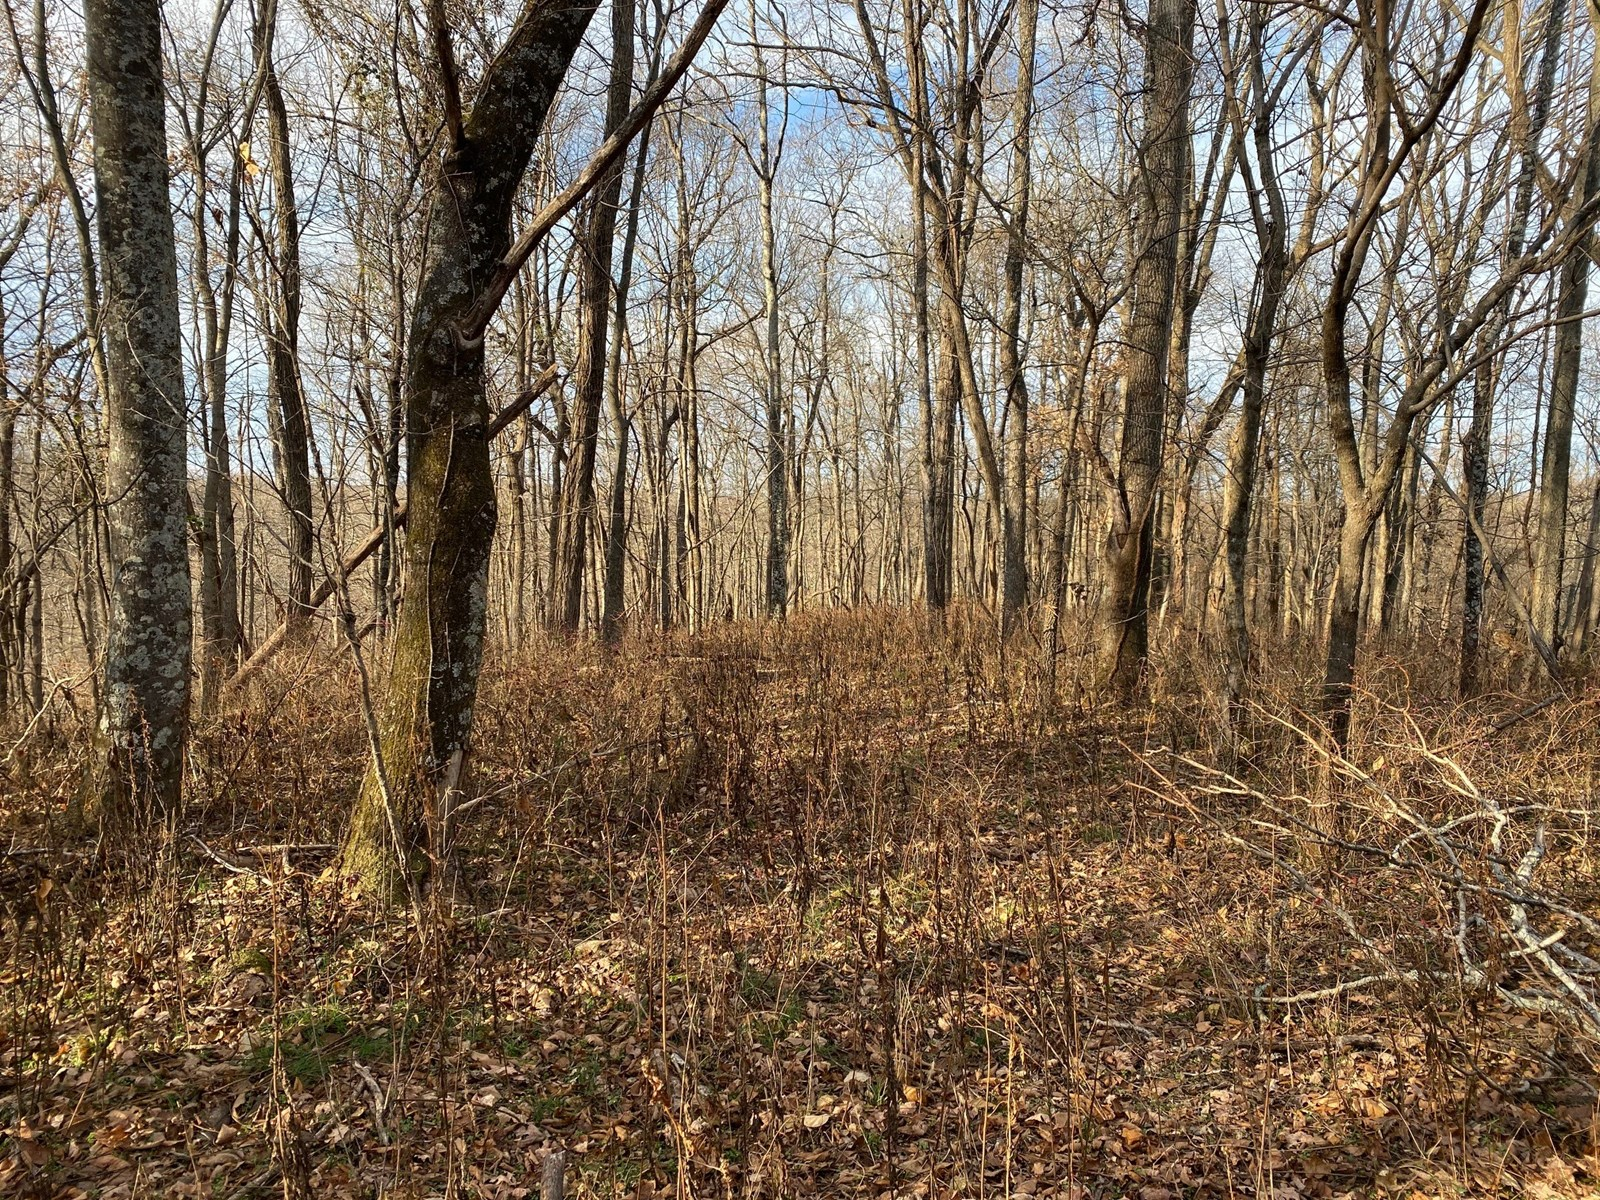 Land for Sale in Columbia TN